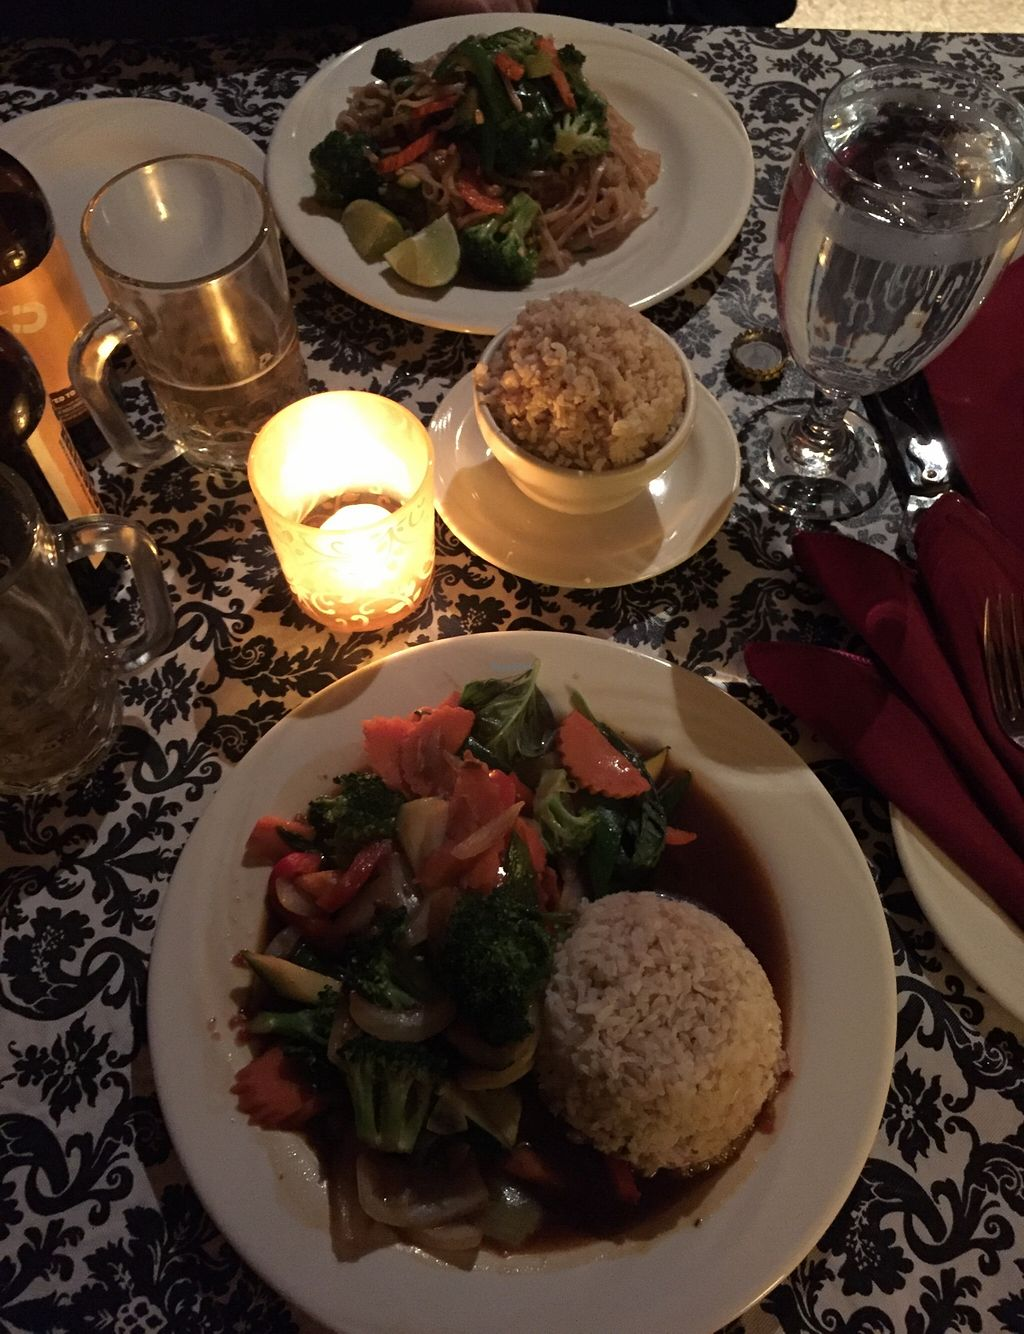 "Photo of Thai Tida  by <a href=""/members/profile/AshleyxMichelle"">AshleyxMichelle</a> <br/>Vegan Gluten Free Pad Thai and Vegan Gluten Free Thai Basil Stir-Fry <br/> March 1, 2016  - <a href='/contact/abuse/image/70357/138364'>Report</a>"